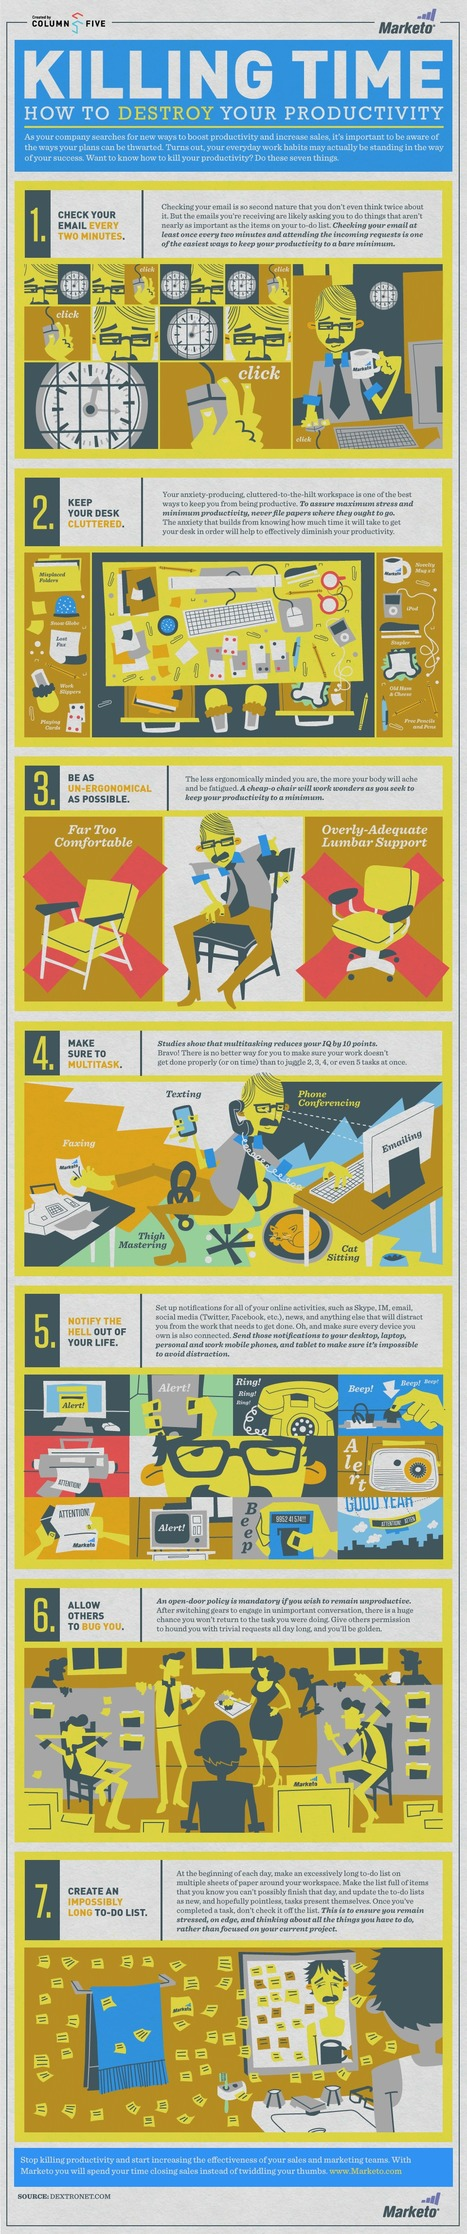 Killing Time: How to Destroy Your Productivity [Infographic] | Creative Facilitation and Coaching | Scoop.it